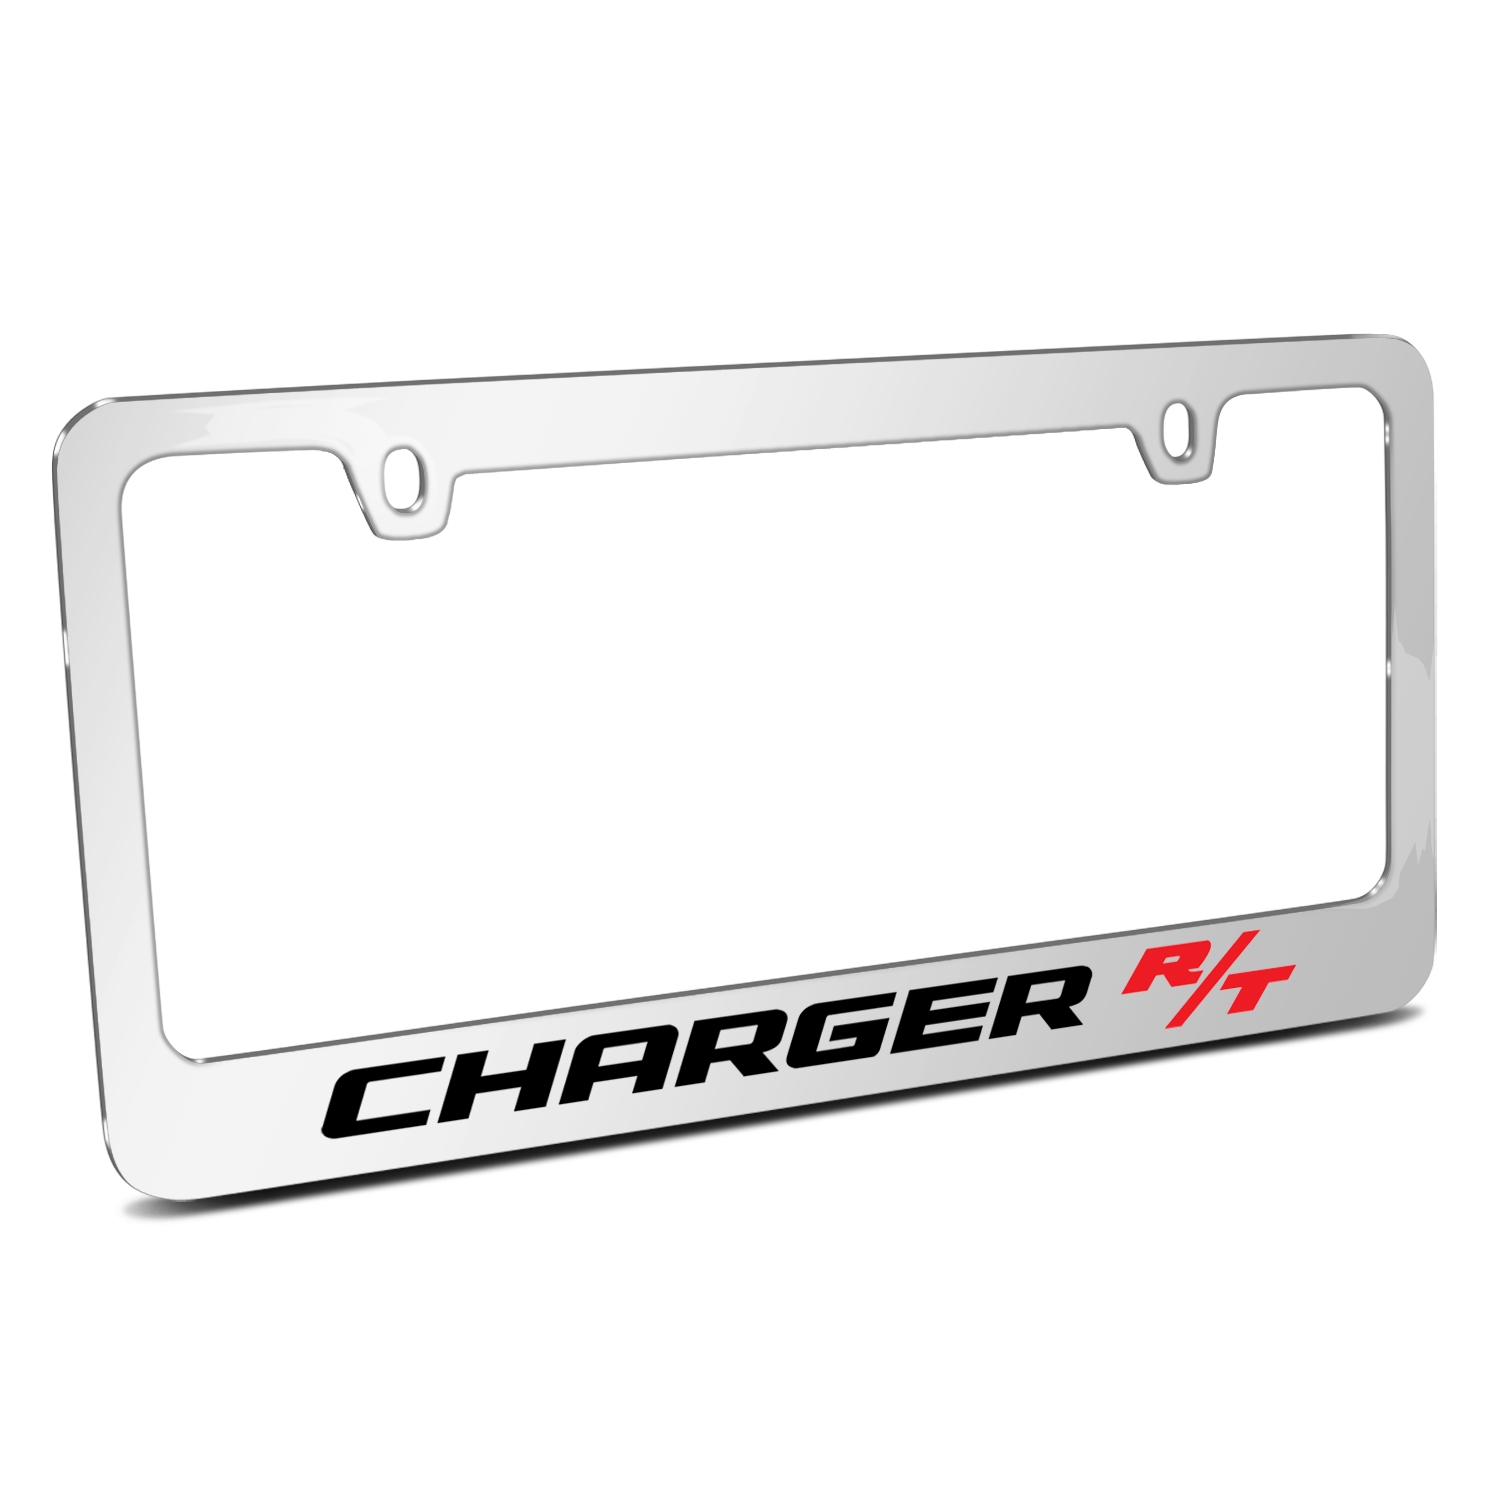 Dodge Charger R/T Mirror Chrome Metal License Plate Frame